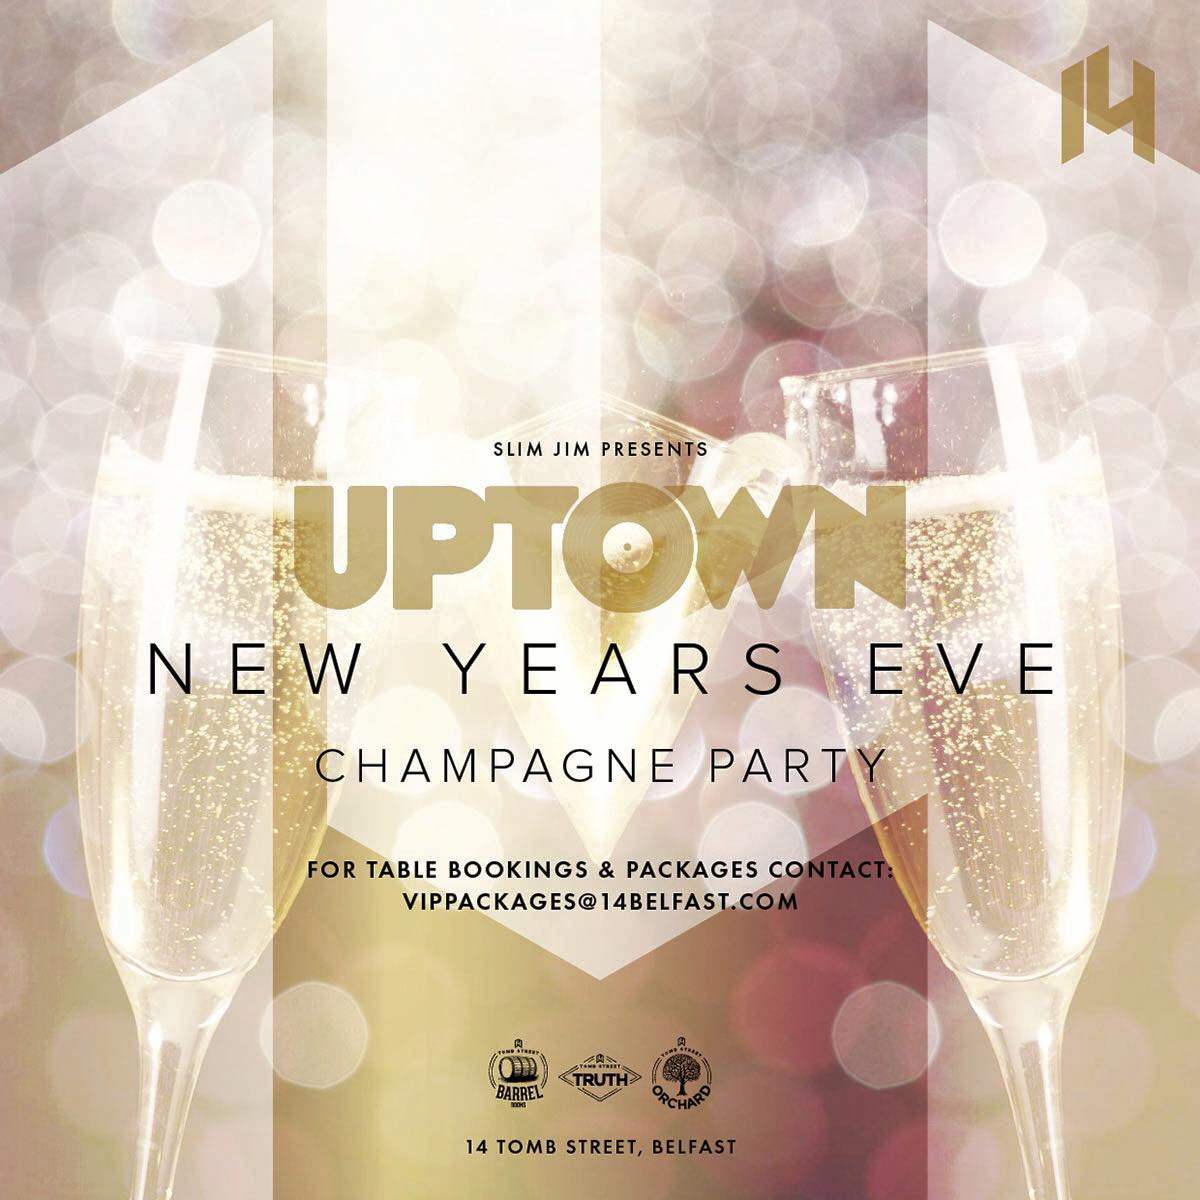 UPTOWN-New-Years-Eve-champagne-Party-14-2017.jpg